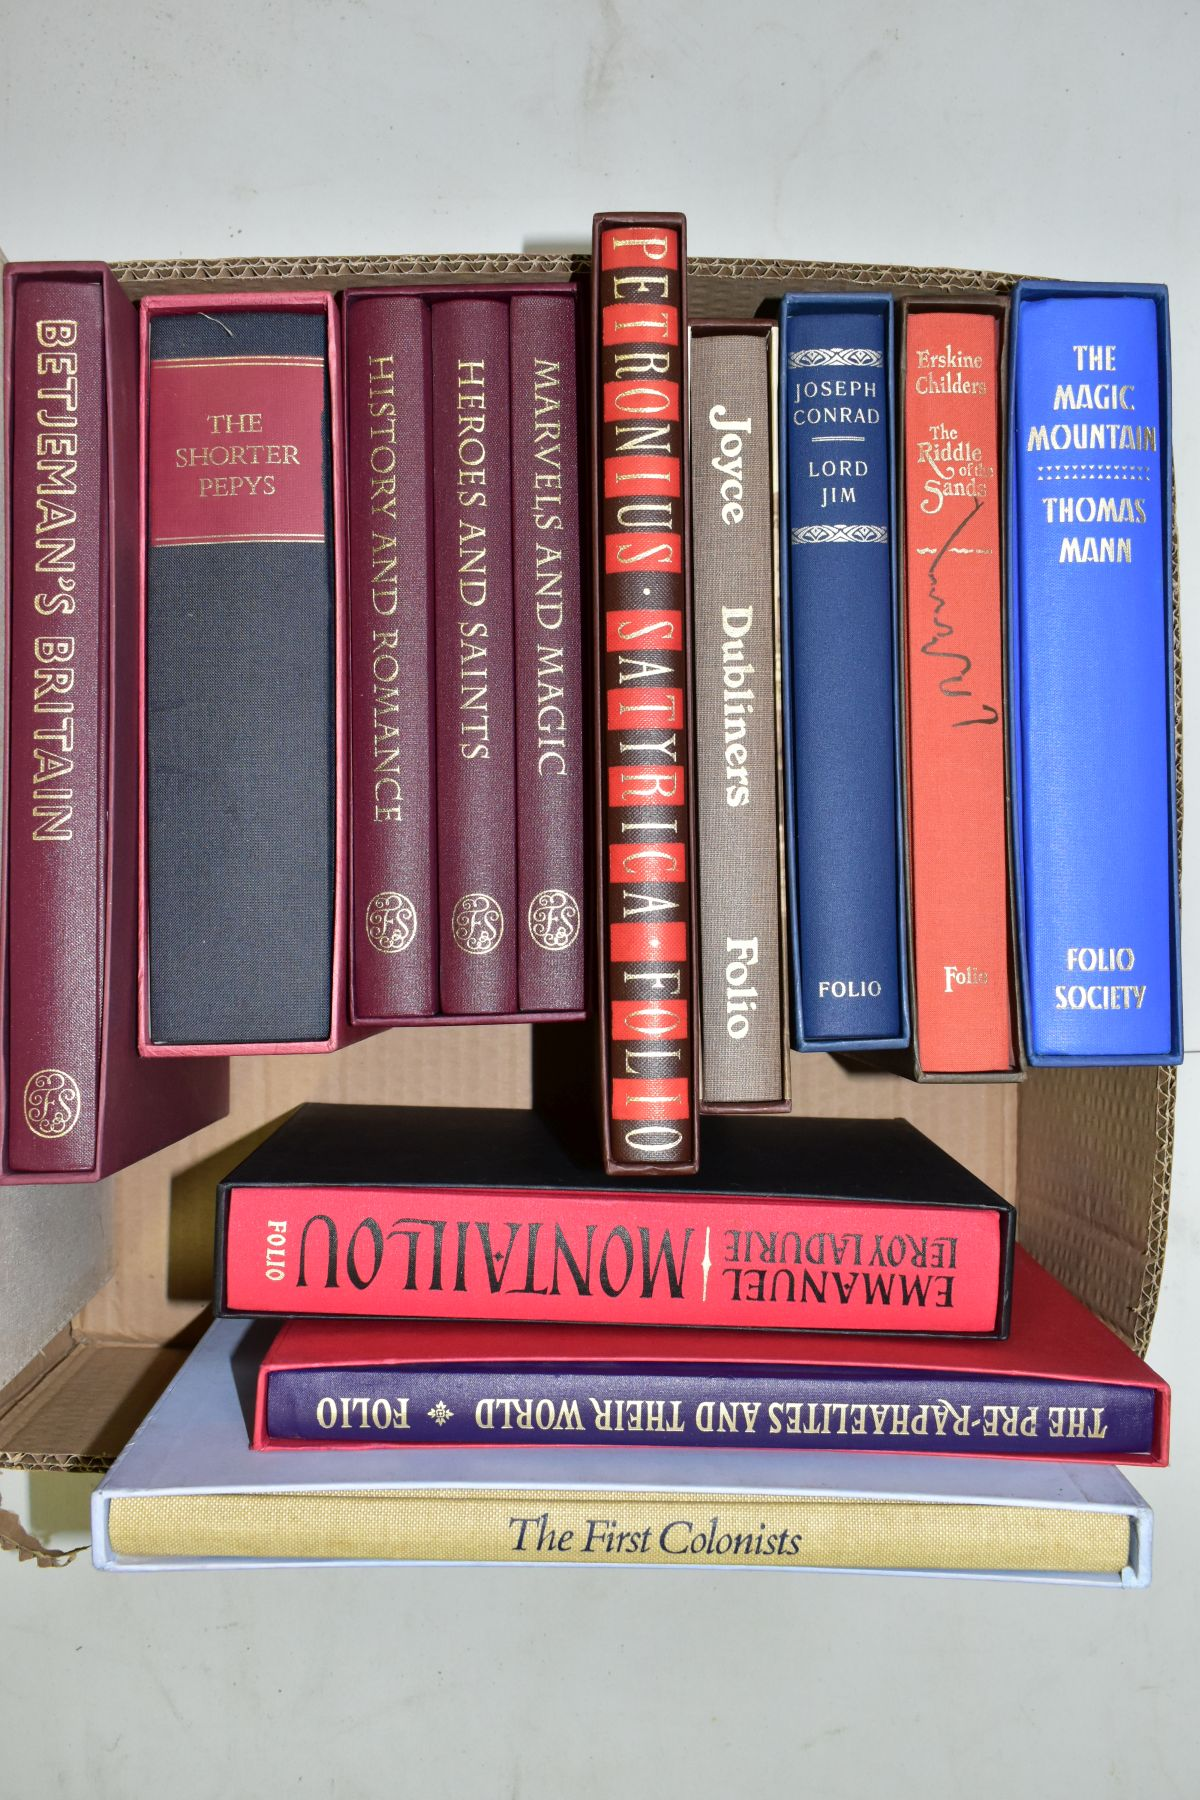 THE FOLIO SOCIETY, thirteen titles and one other comprising The First Colonists, Hakluyt's Voyages